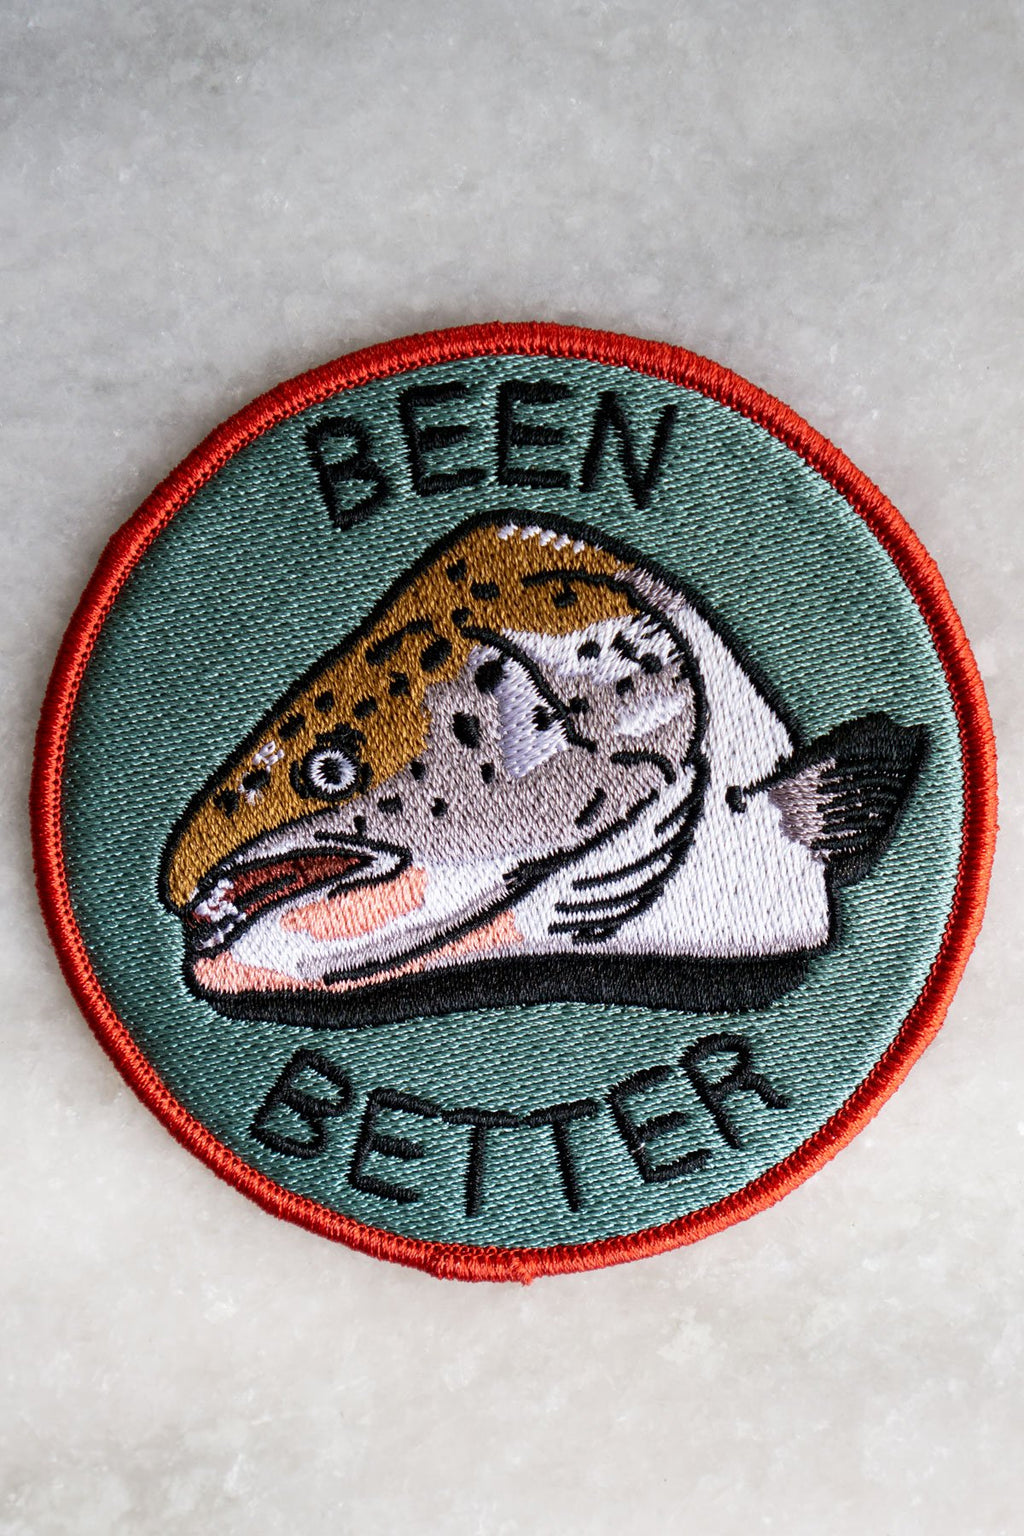 Stay Home Club - Been Better (Fish) Patch